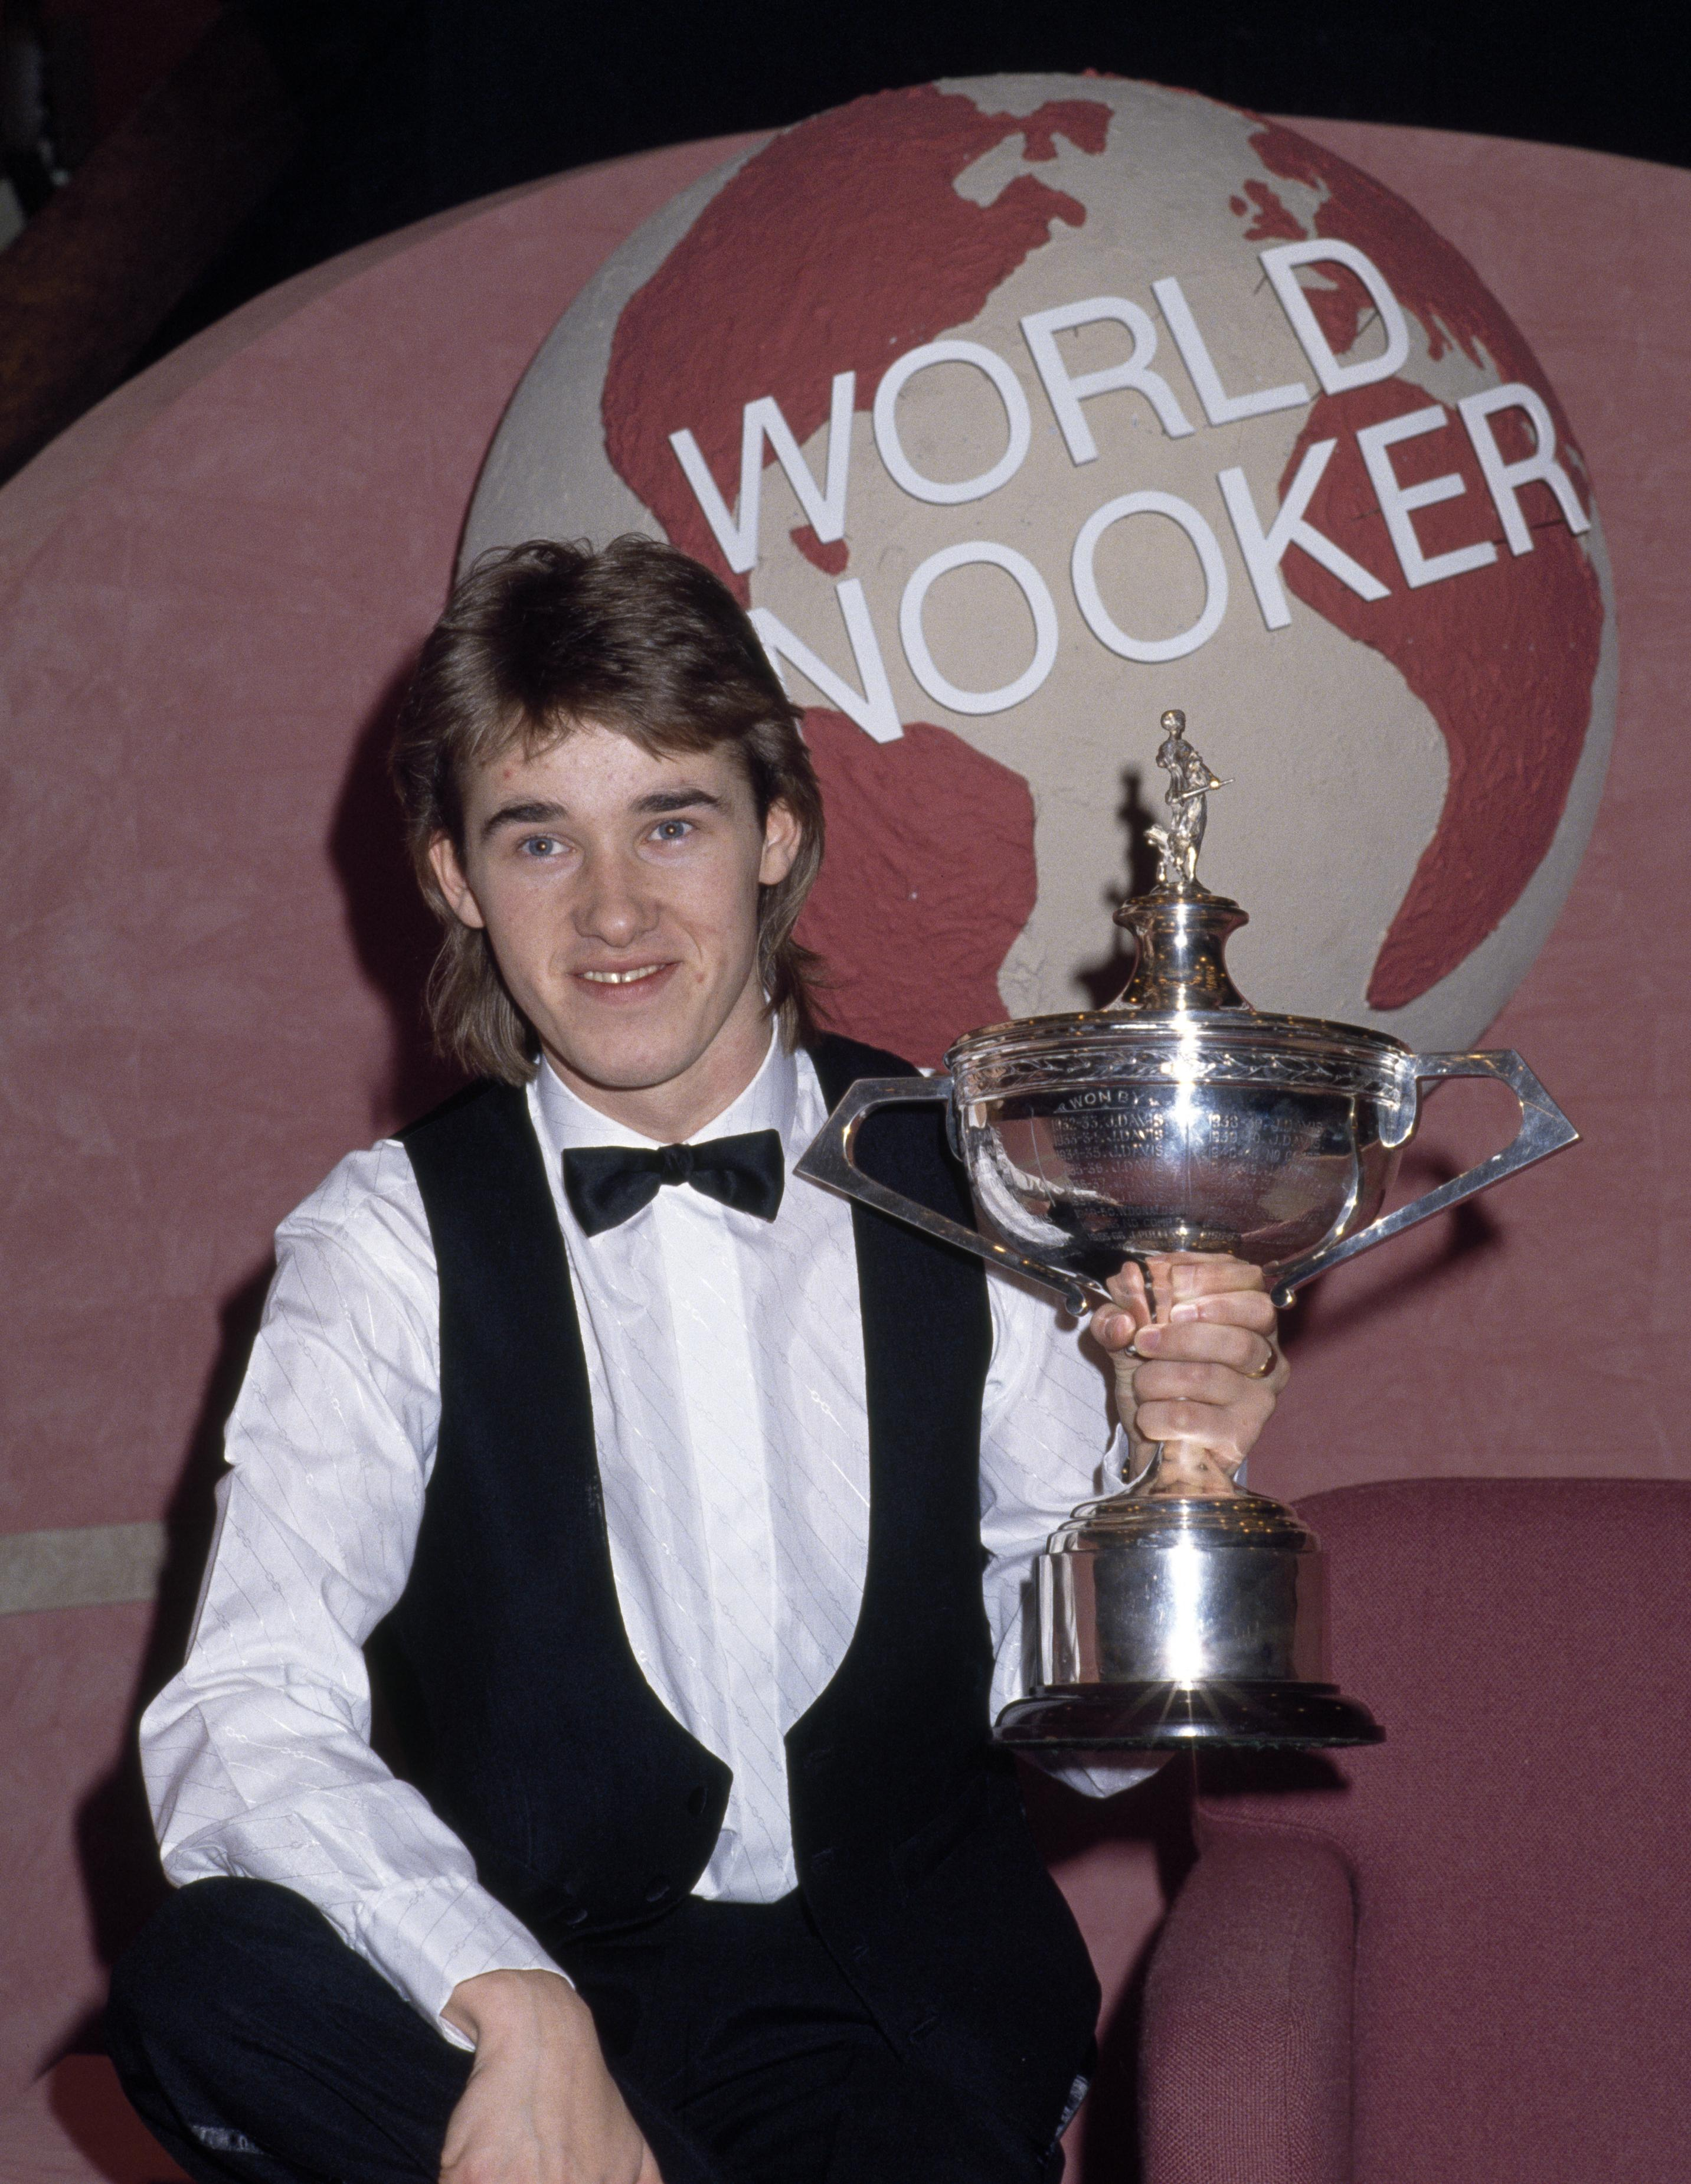 Stephen Hendry won his first World Championship trophy at the age of 21